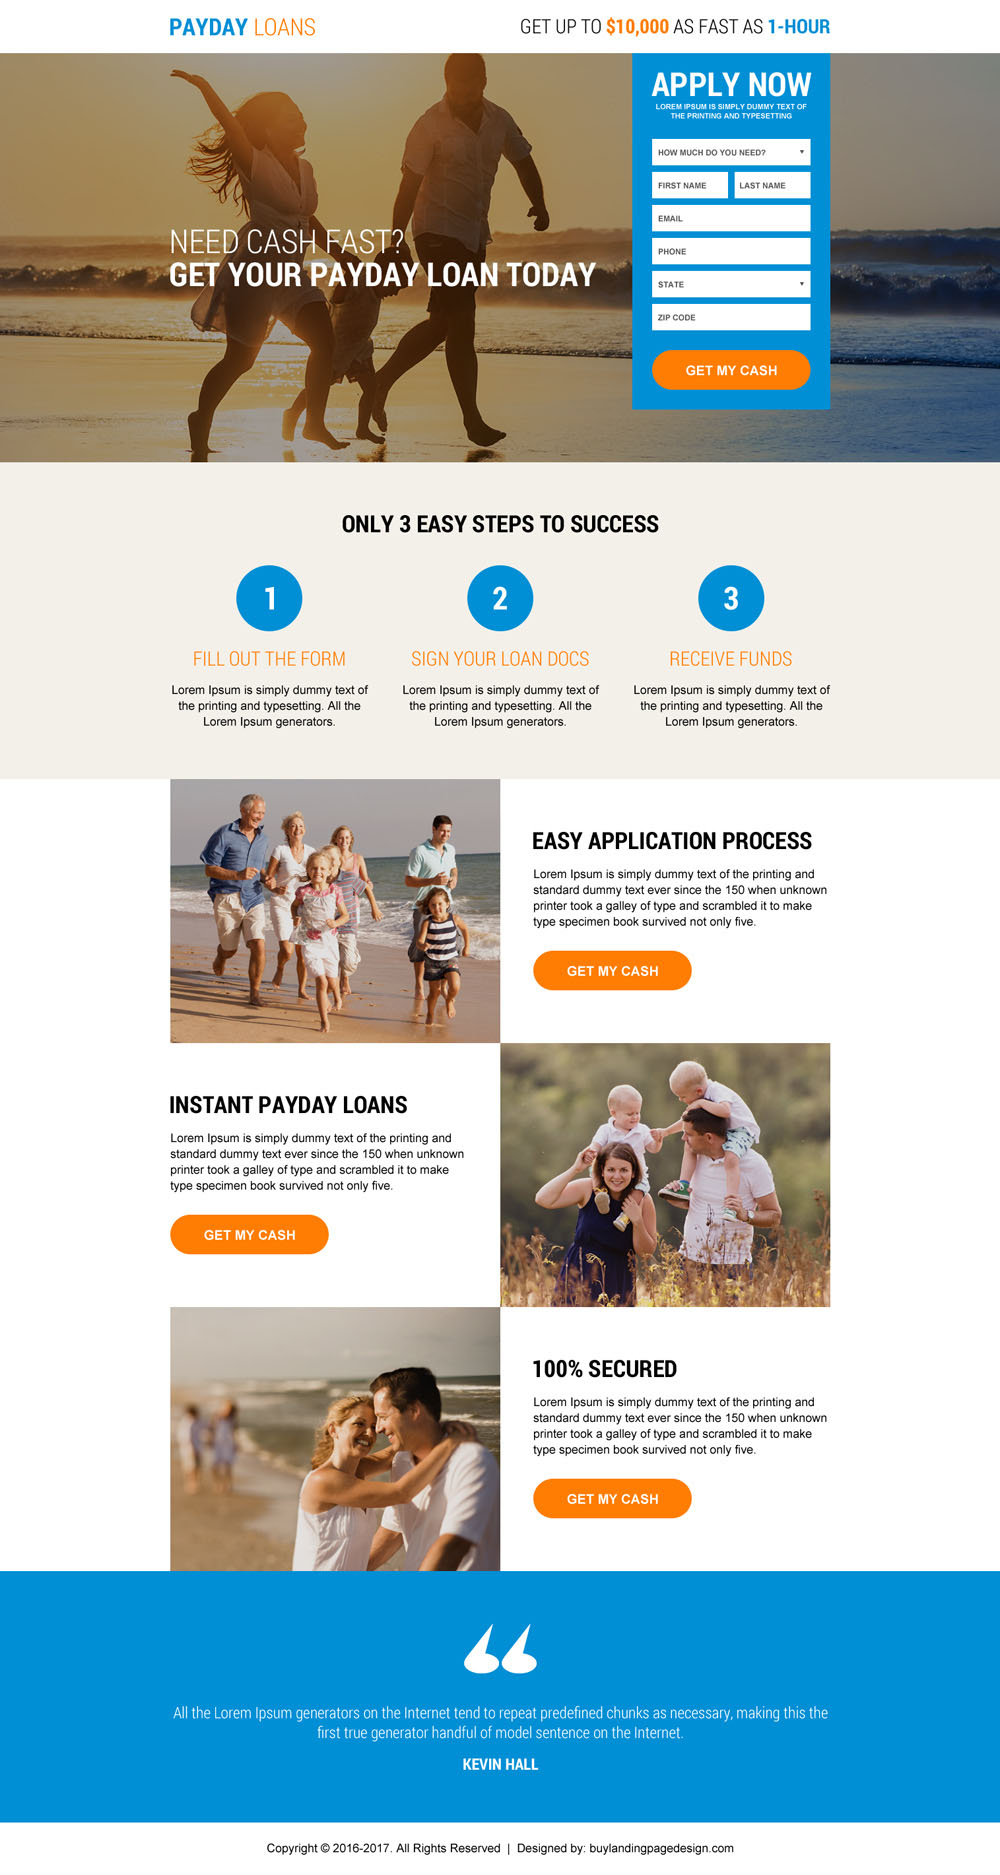 Quick Payday Loan Application : Discount on responsive payday loan landing page designs